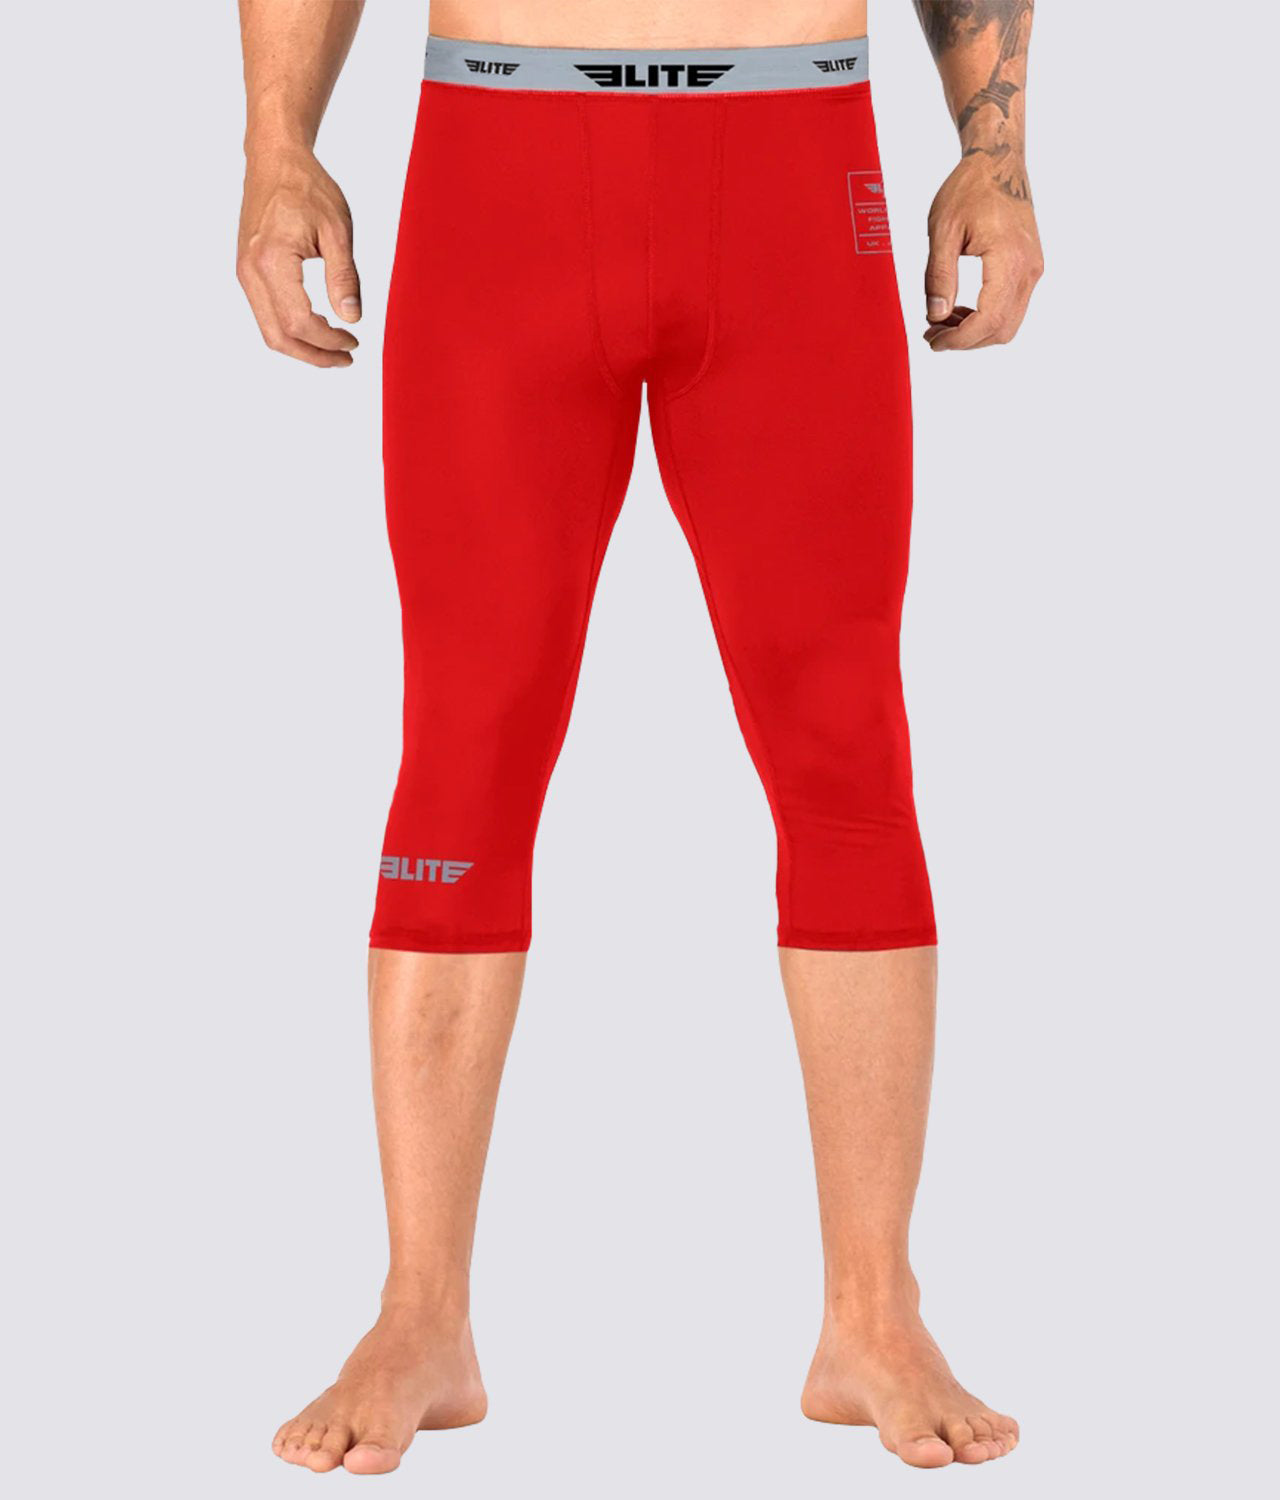 Elite Sports Three Quarter Red Compression Judo Spat Pants